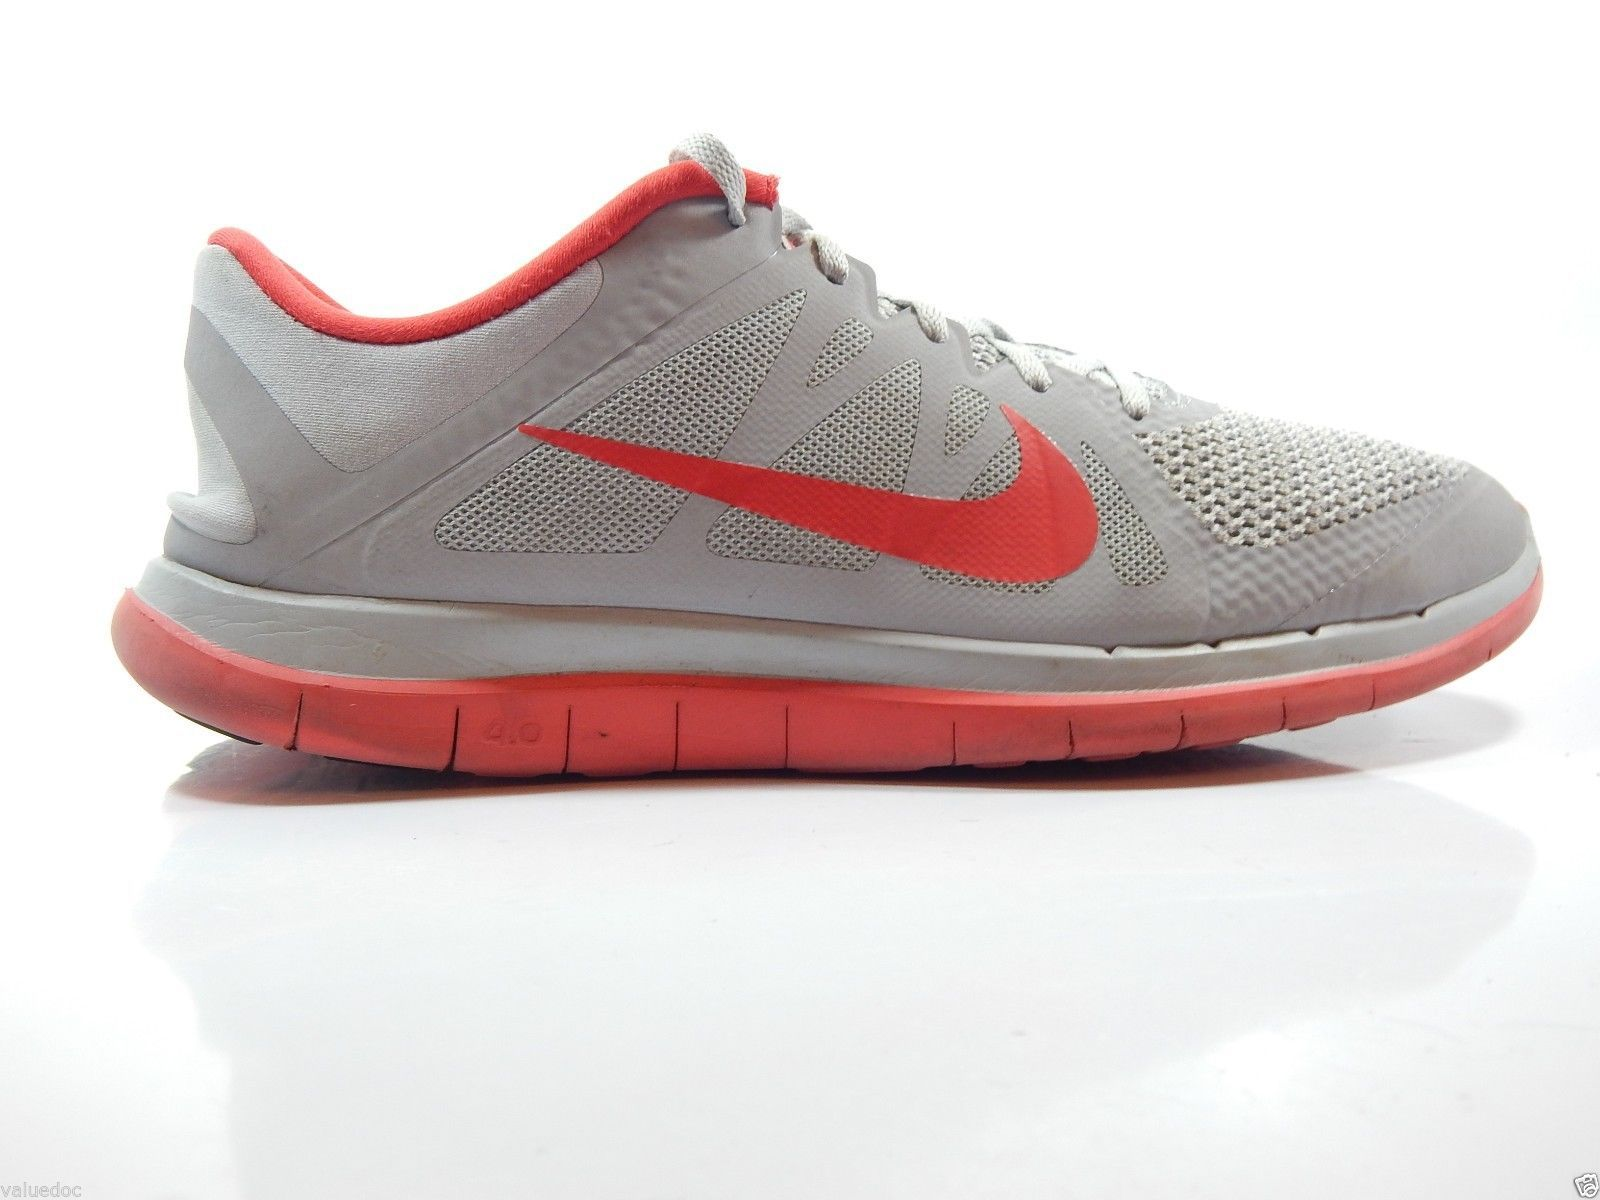 Nike Free 4.0 Mens Running Shoes Size US 12 M ( D ) EU 46 Grey Red